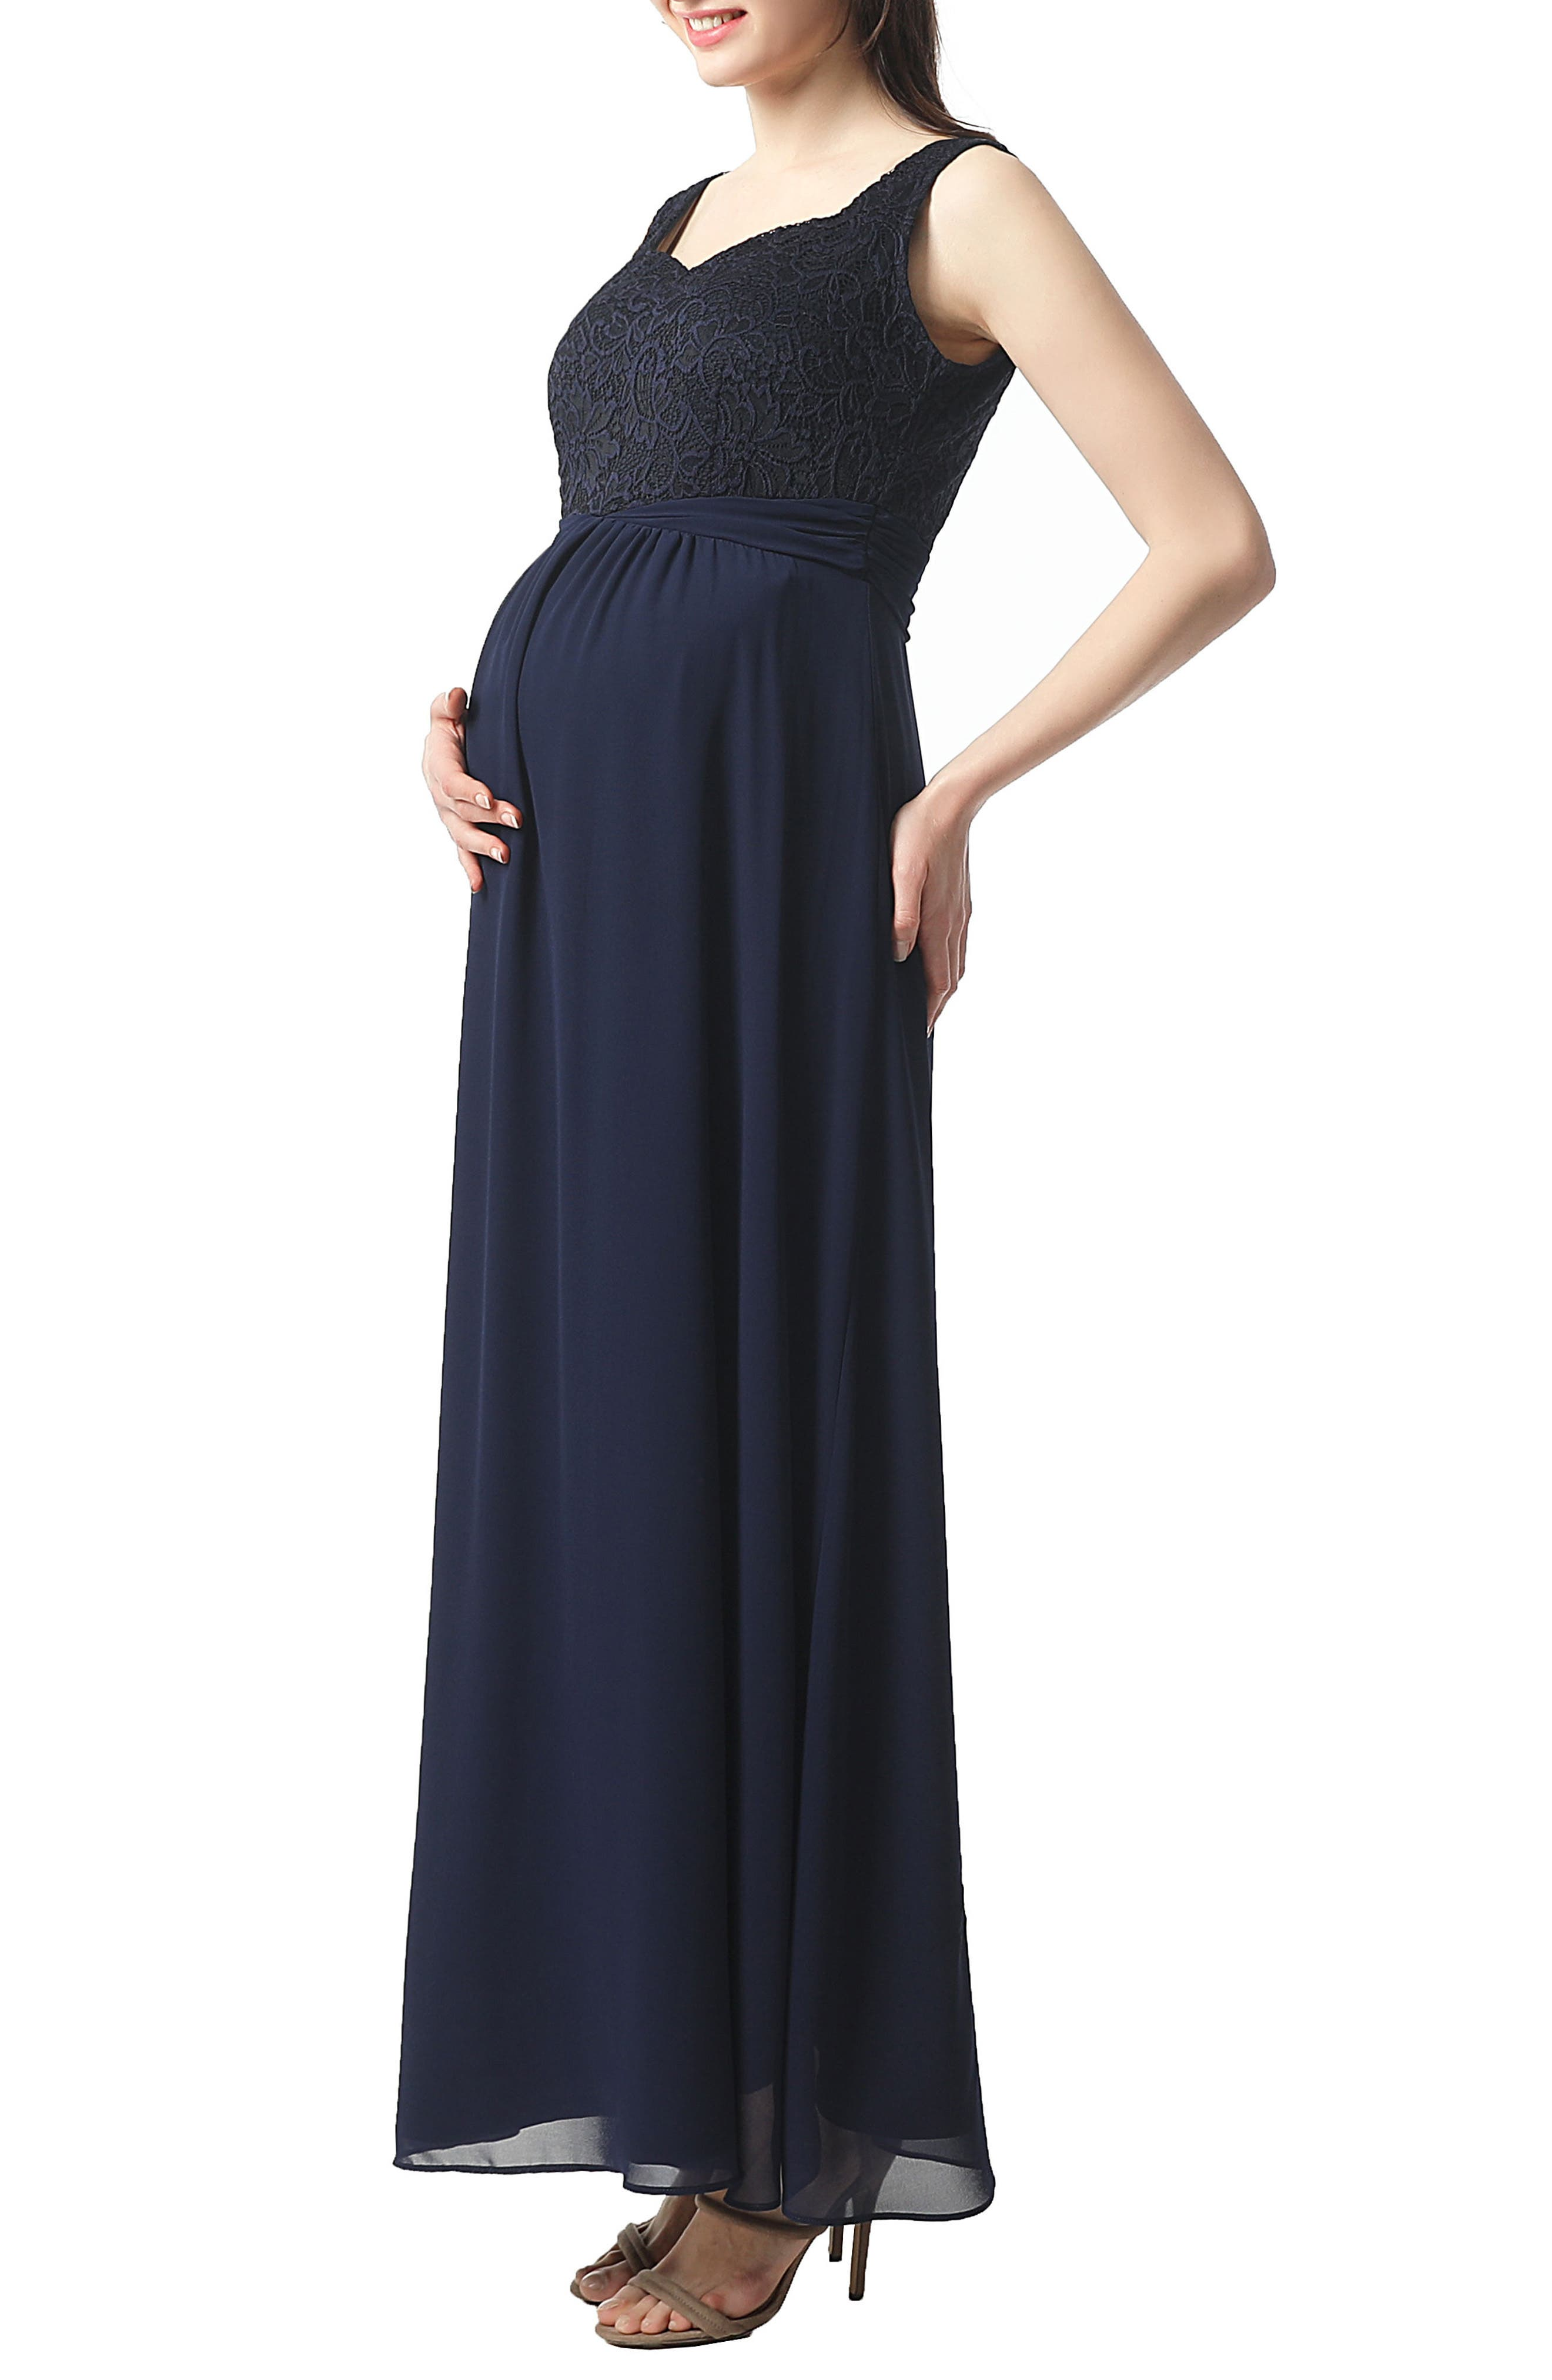 Kyra Maternity Maxi Dress,                             Alternate thumbnail 3, color,                             Navy